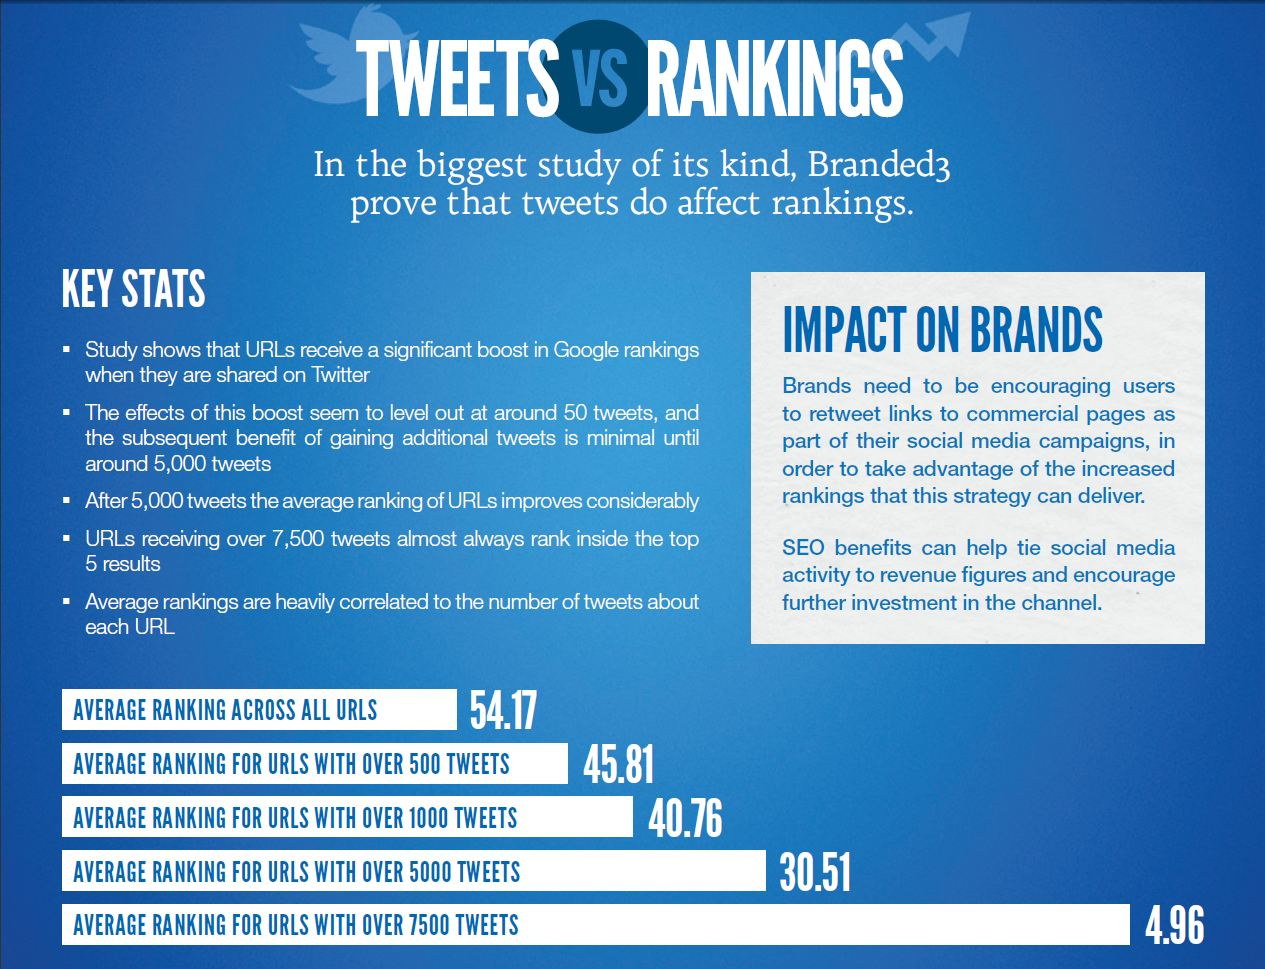 Tweets vs Rankings, How twitter affects Google ranking - Mike Jeffs